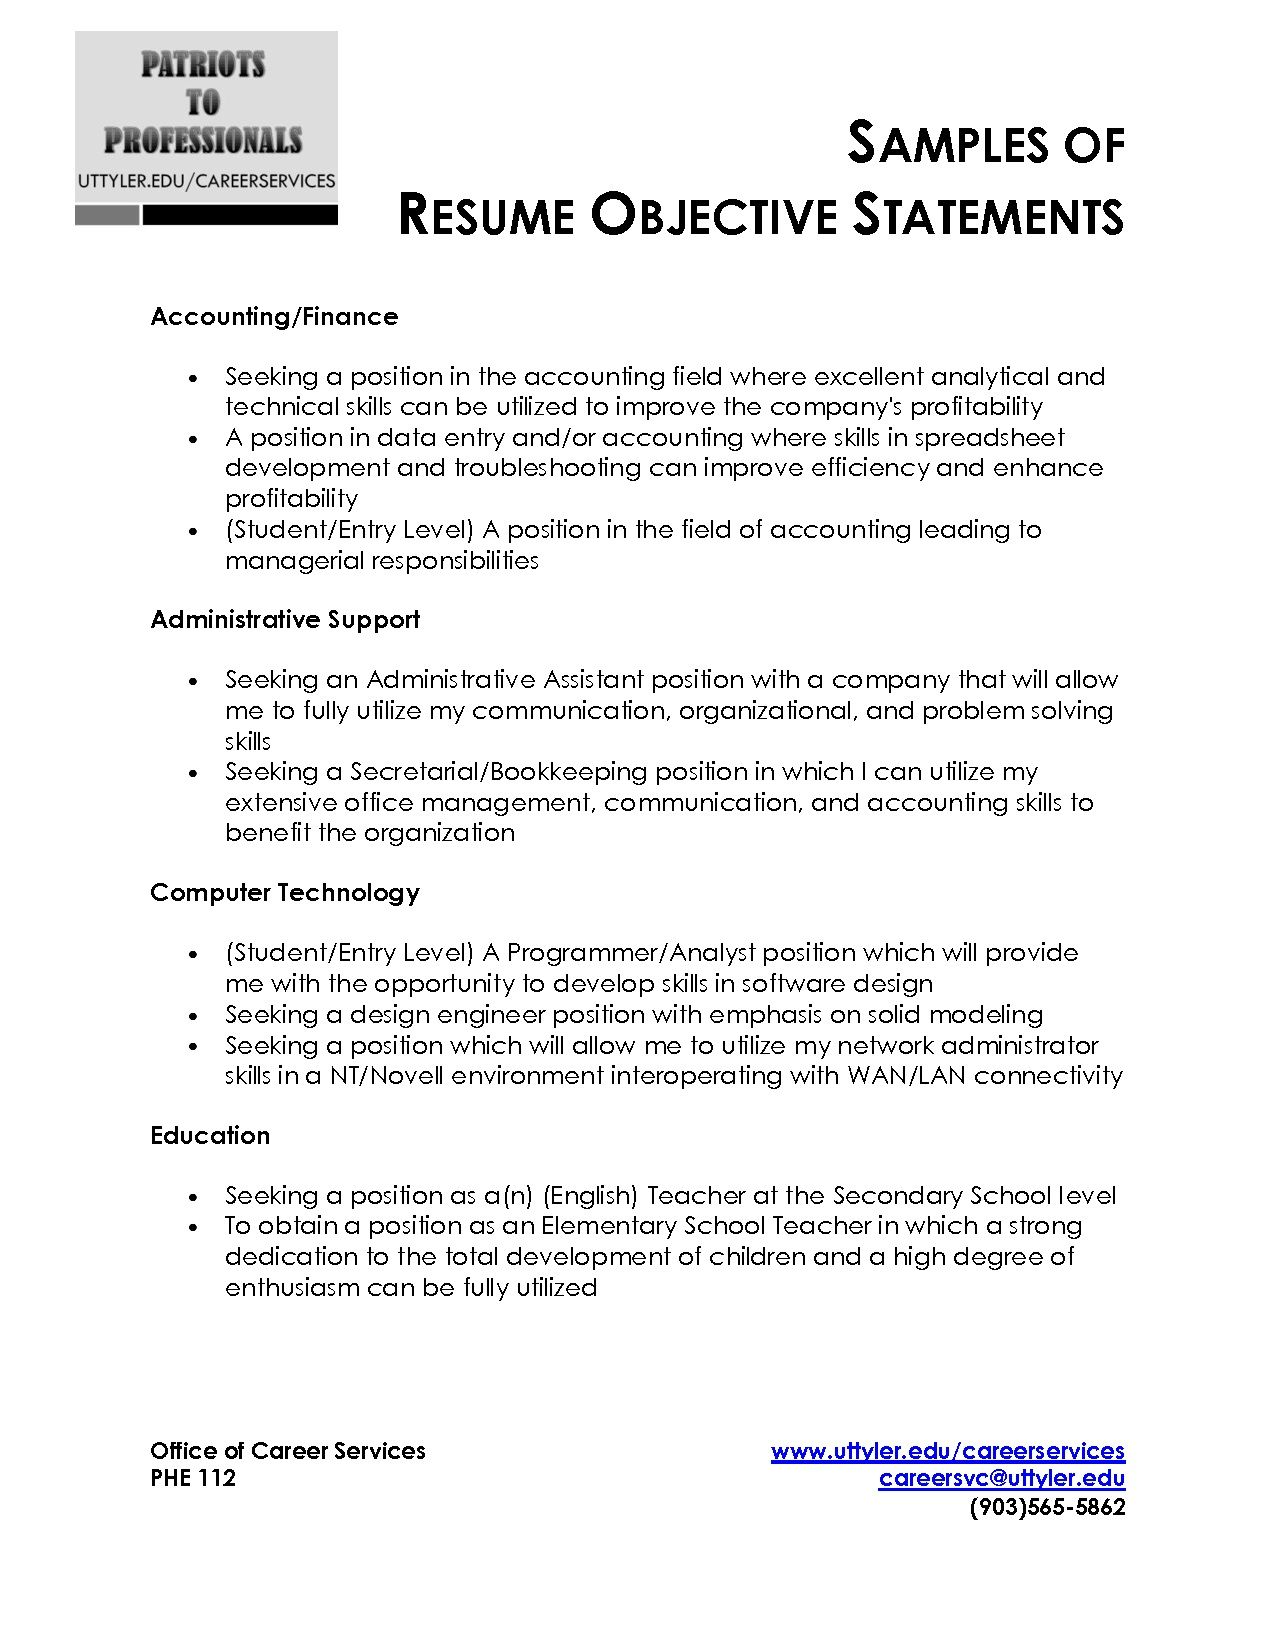 Sample Resume Objective Statement (adsbygoogle U003d Window  11cd4df97d44e6d114efc836423cc1b8 298152437809142148. Resume Objective  Examples Management  Office Management Resume